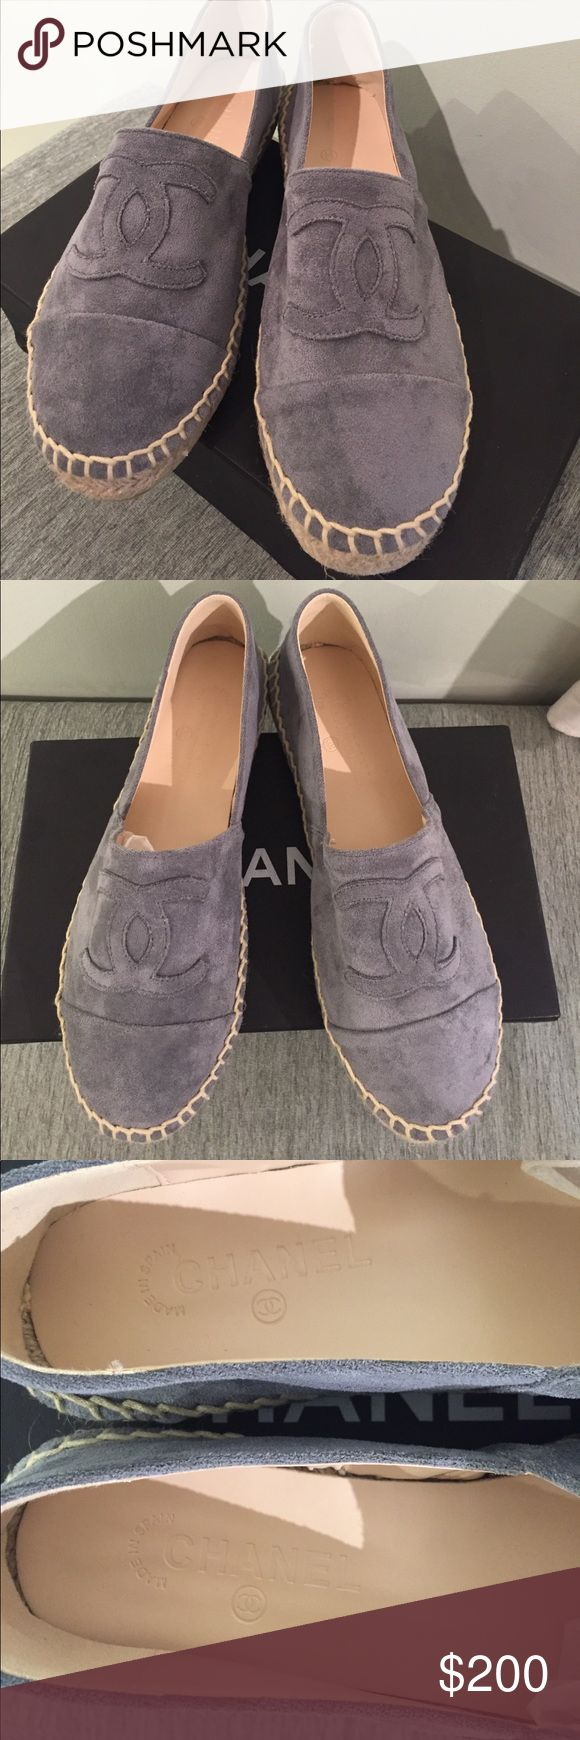 Chanel Espadrilles Beautiful suede like grey espadrilles. Soft and so comfy!  ❌ auth!  Marked a 40 but Fit like an 8-8.5 CHANEL Shoes Espadrilles